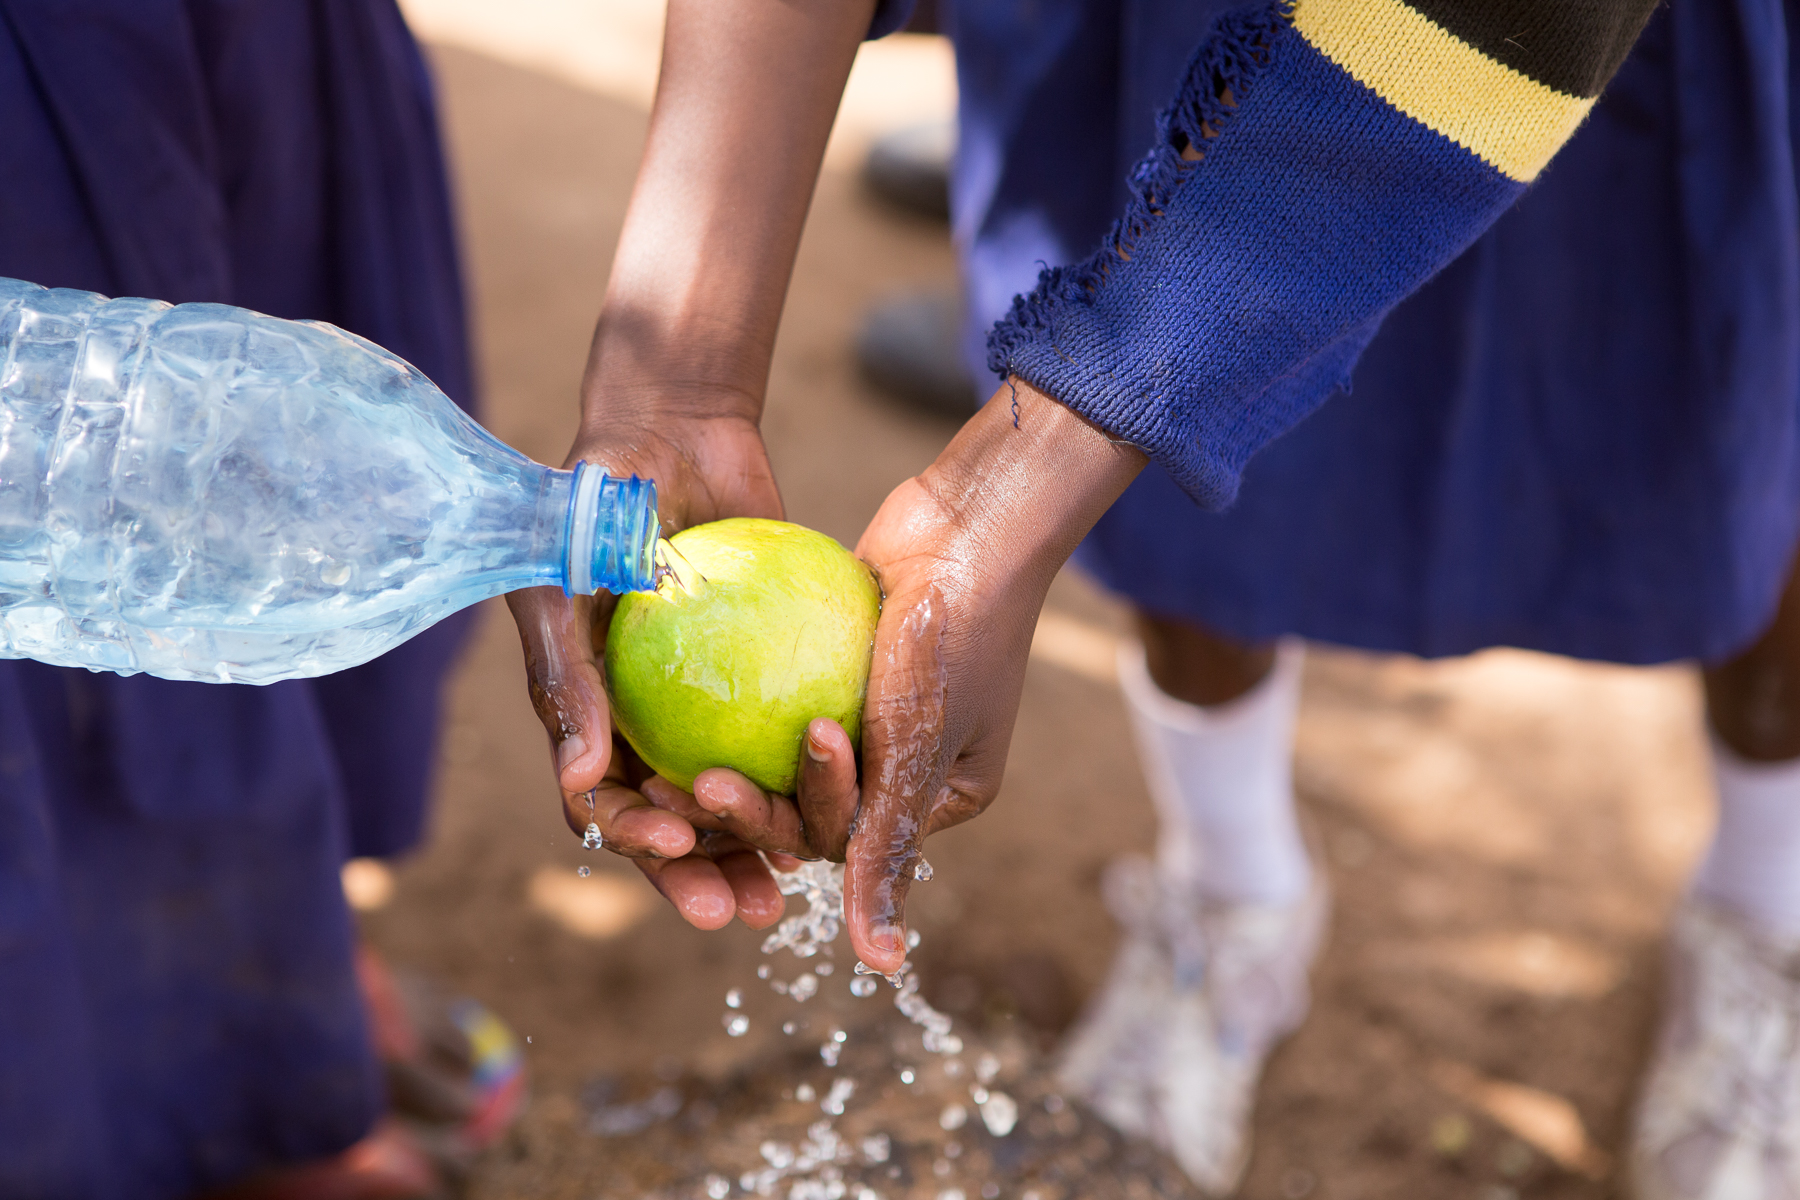 water_and_sanitation_project_WASH_tanzania